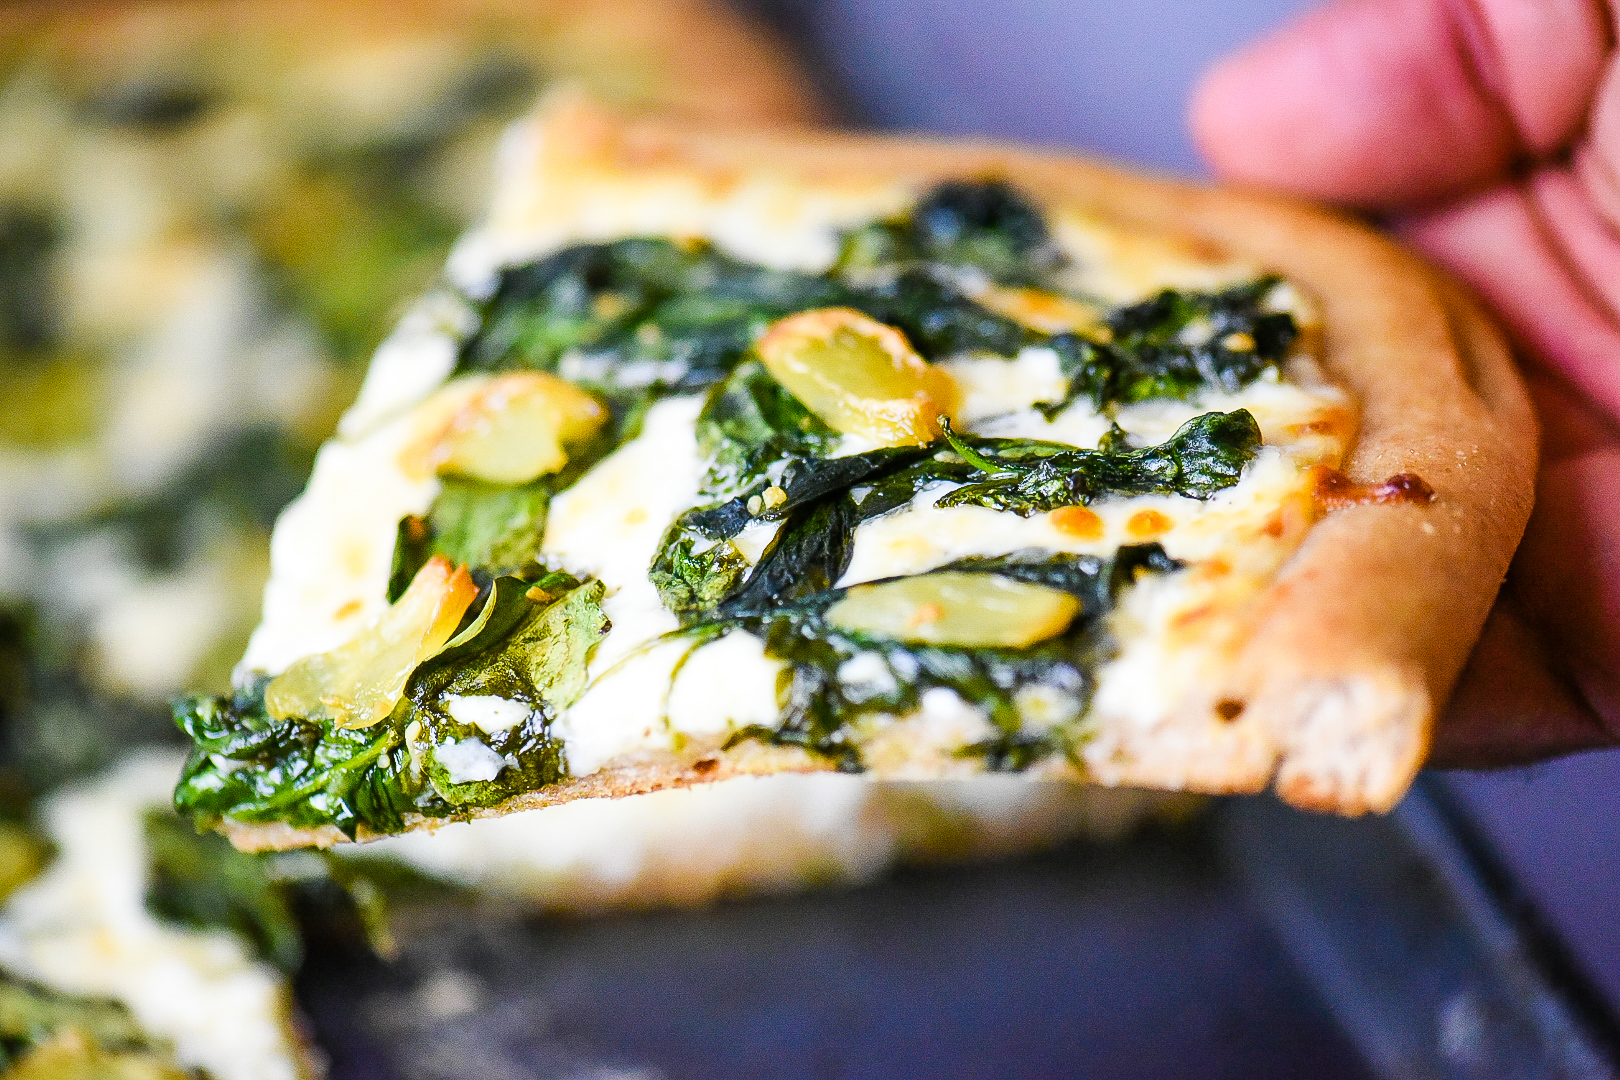 Roasted Garlic and Spinach Parmesan Pizza